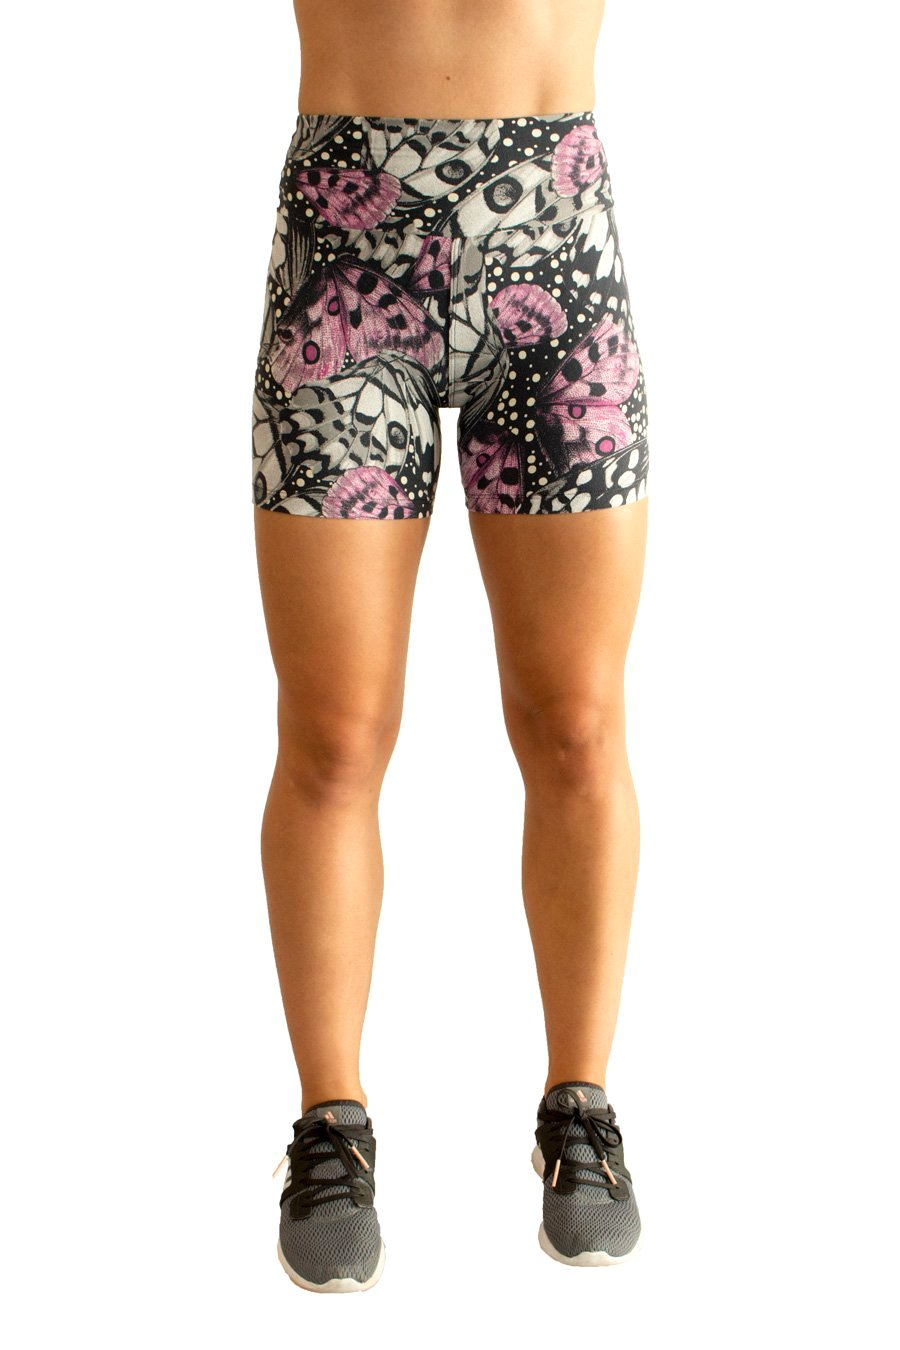 Borboleta Shorts - women yoga clothes beBrazil